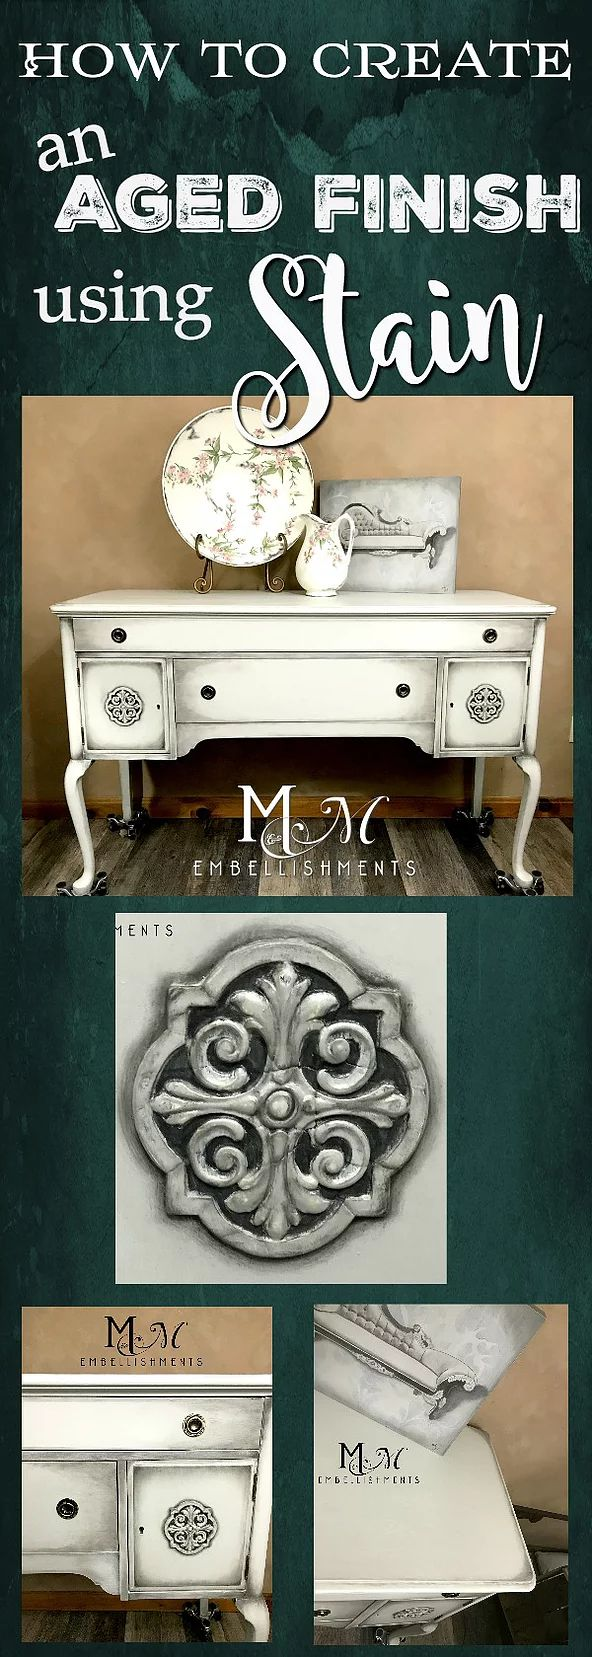 A friend of mine recently inherited some furniture from her Great Aunt Helen. She asked if I would help to revitalize their look. I went to take a